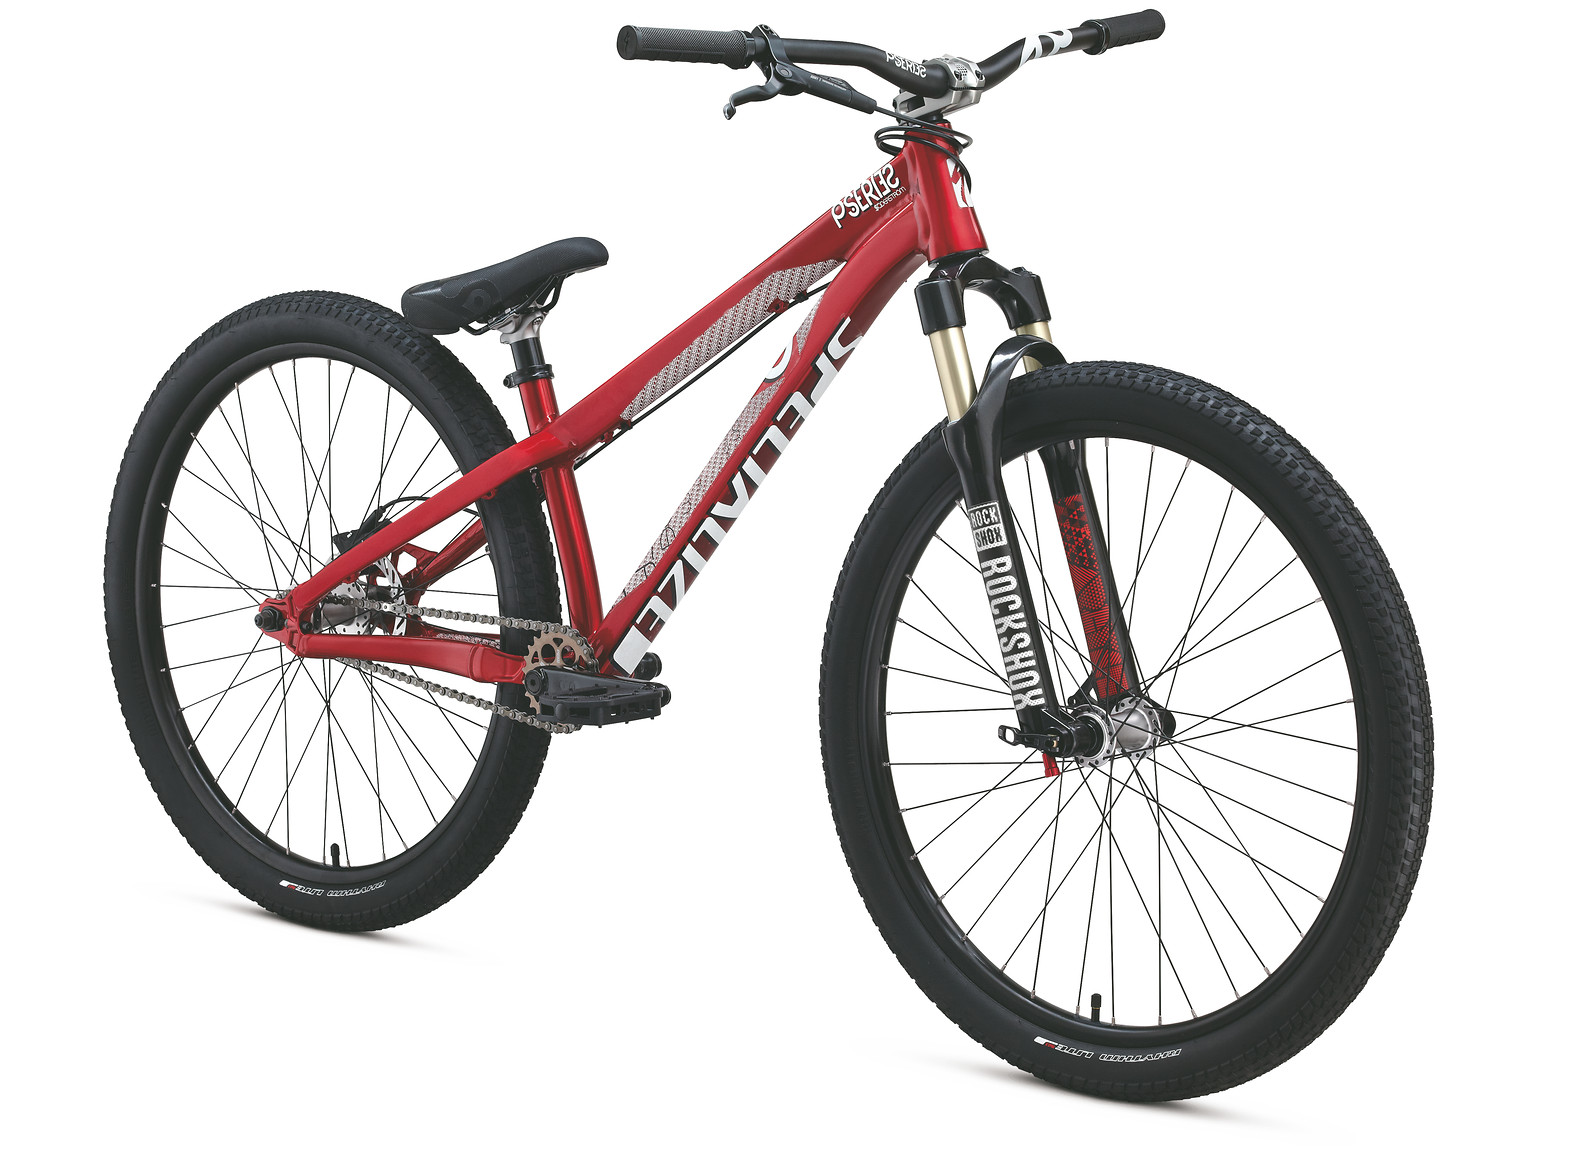 2013 Specialized P.3 Bike 91E9-32_P_3_Blk Soder Claw